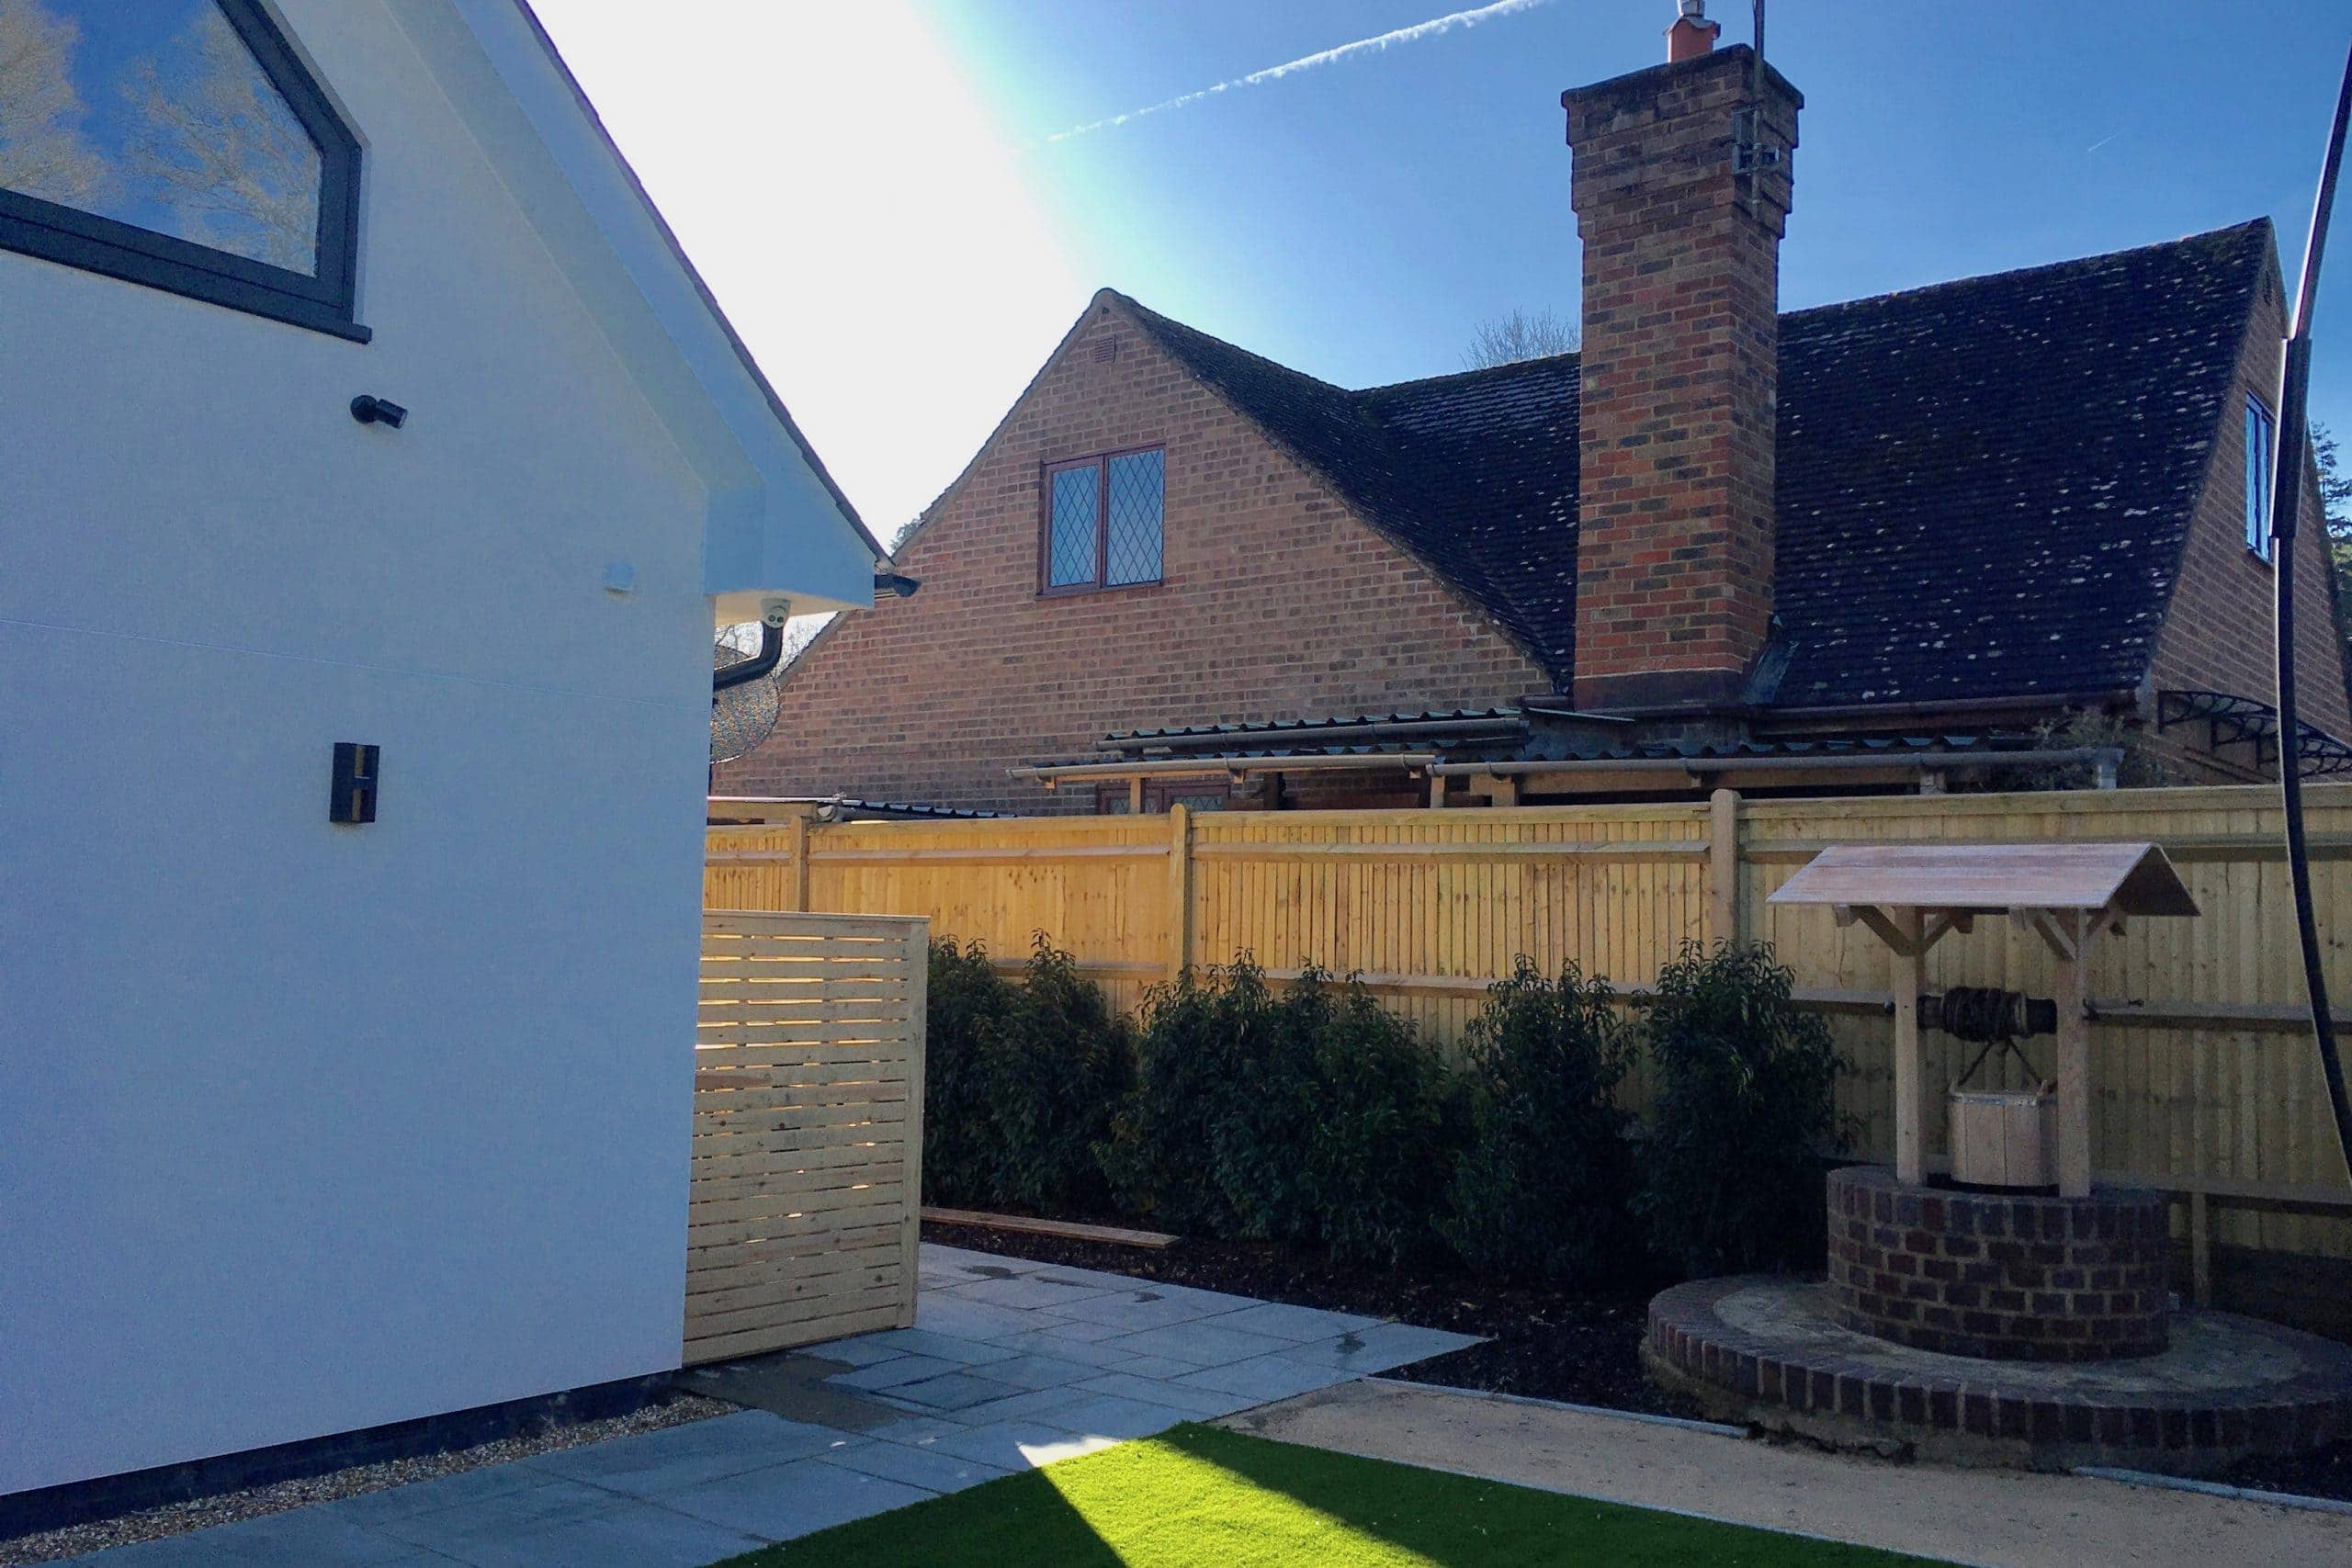 Outdoor MVHR & aircon units in discreet wooden area at domestic build side view